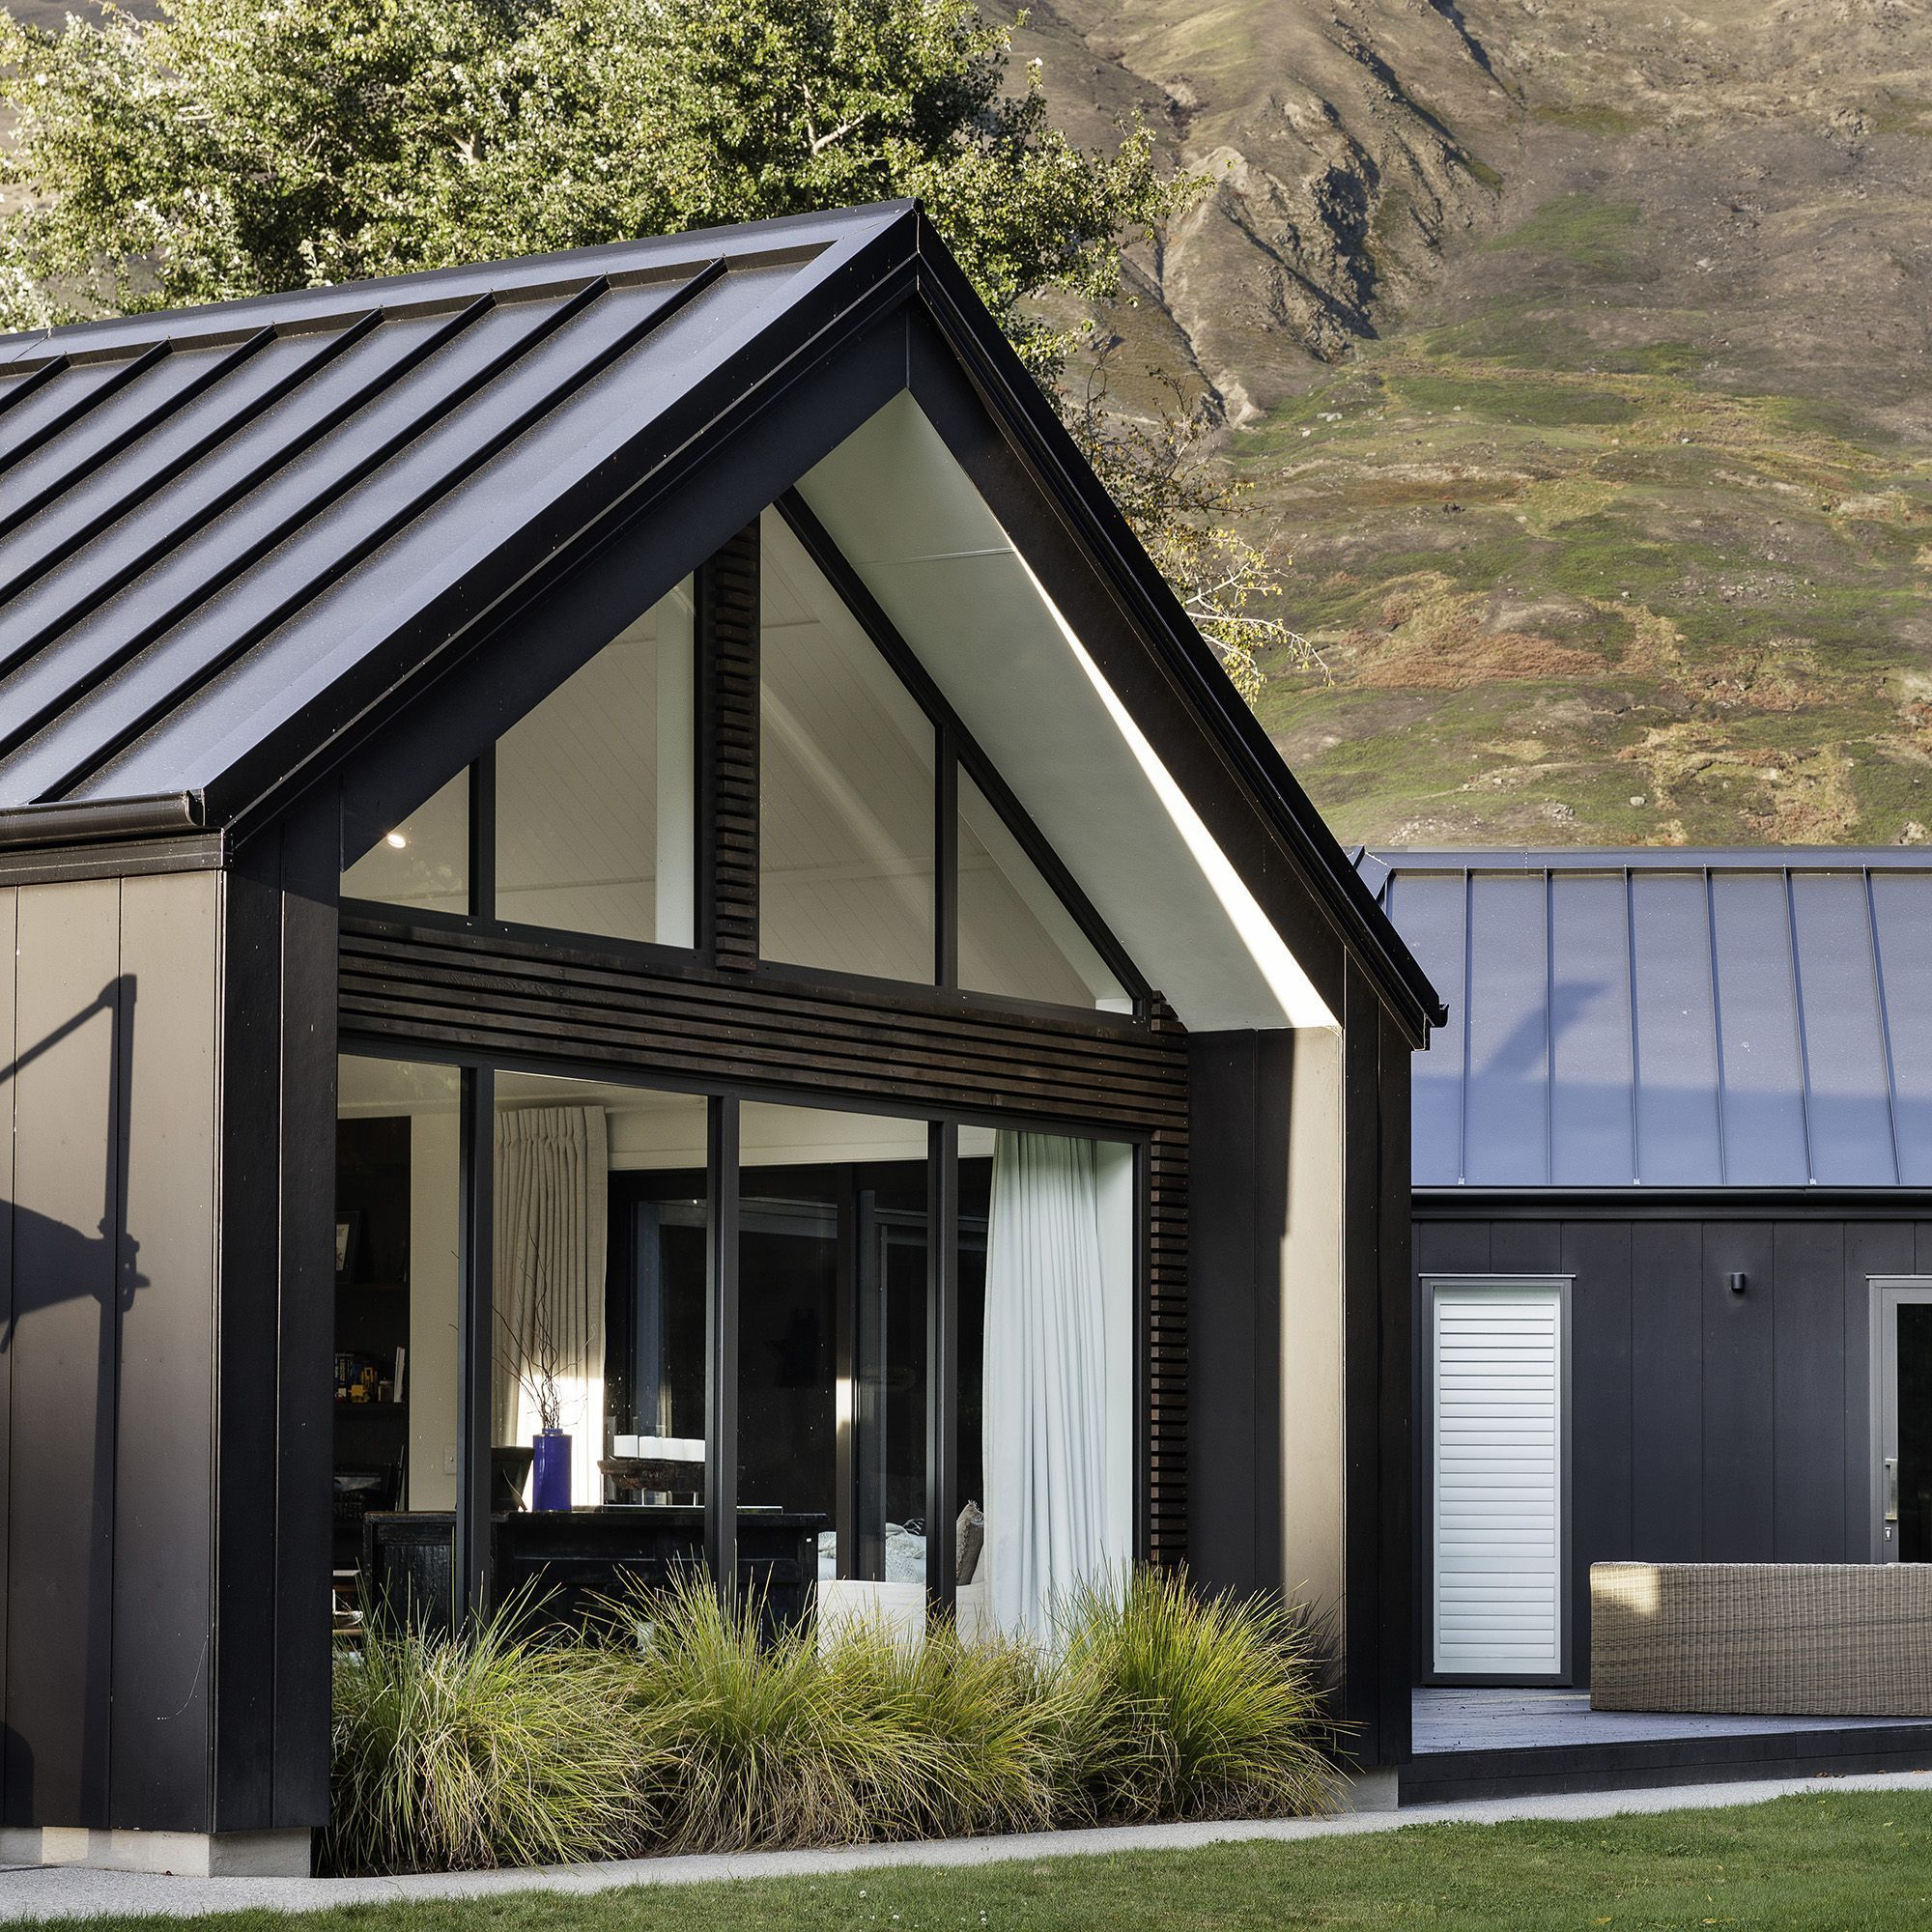 Roofing 101 How To Choose The Right Contractor Gable Roof Design Gable Roof House Barn Style House